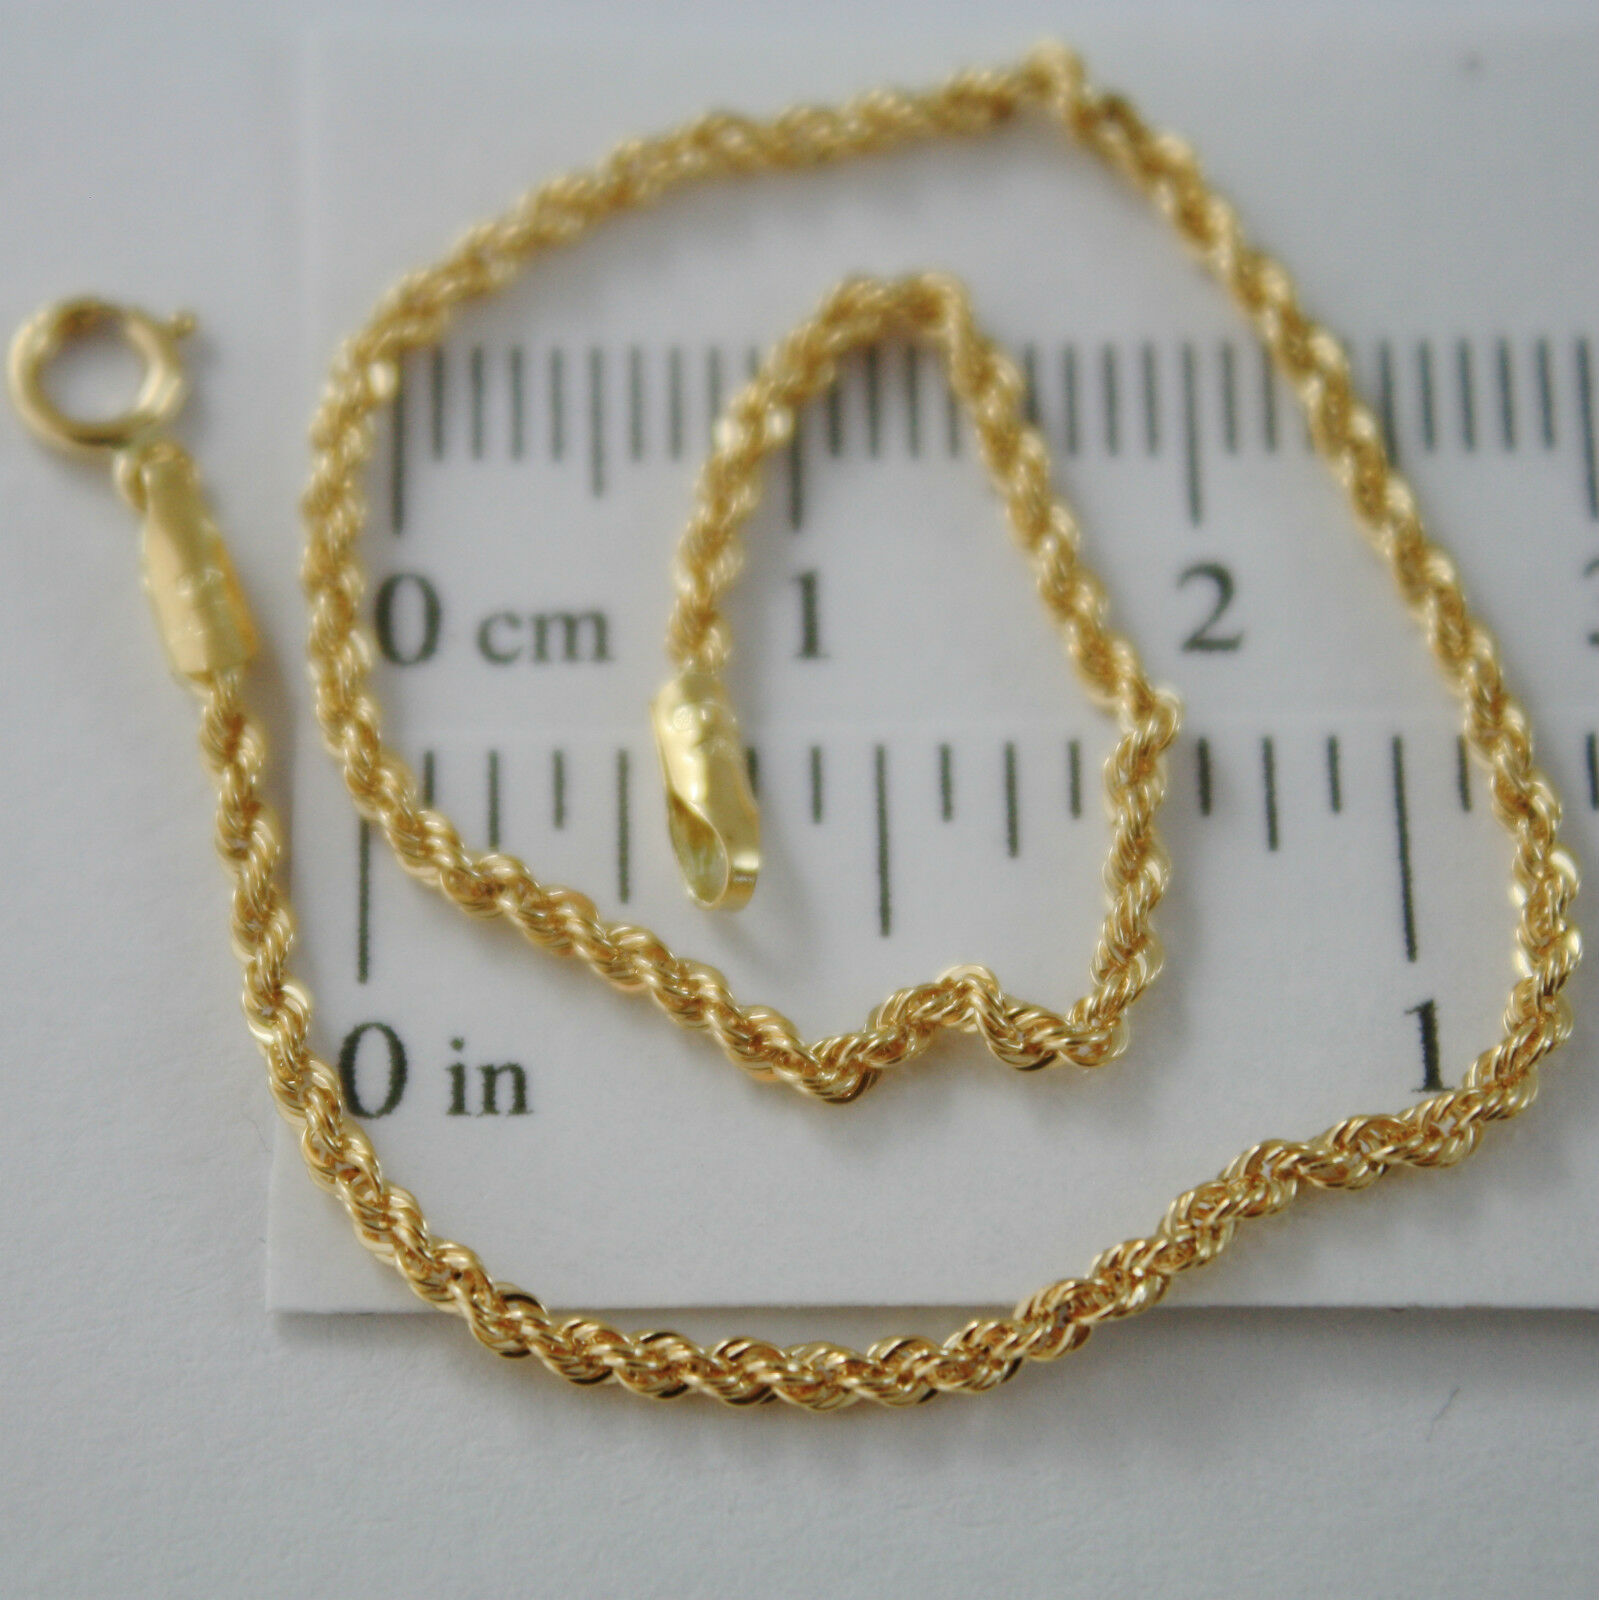 18K YELLOW GOLD BRACELET, 2 MM BRAID ROPE MESH, 7.30 INCHES LONG, MADE IN ITALY